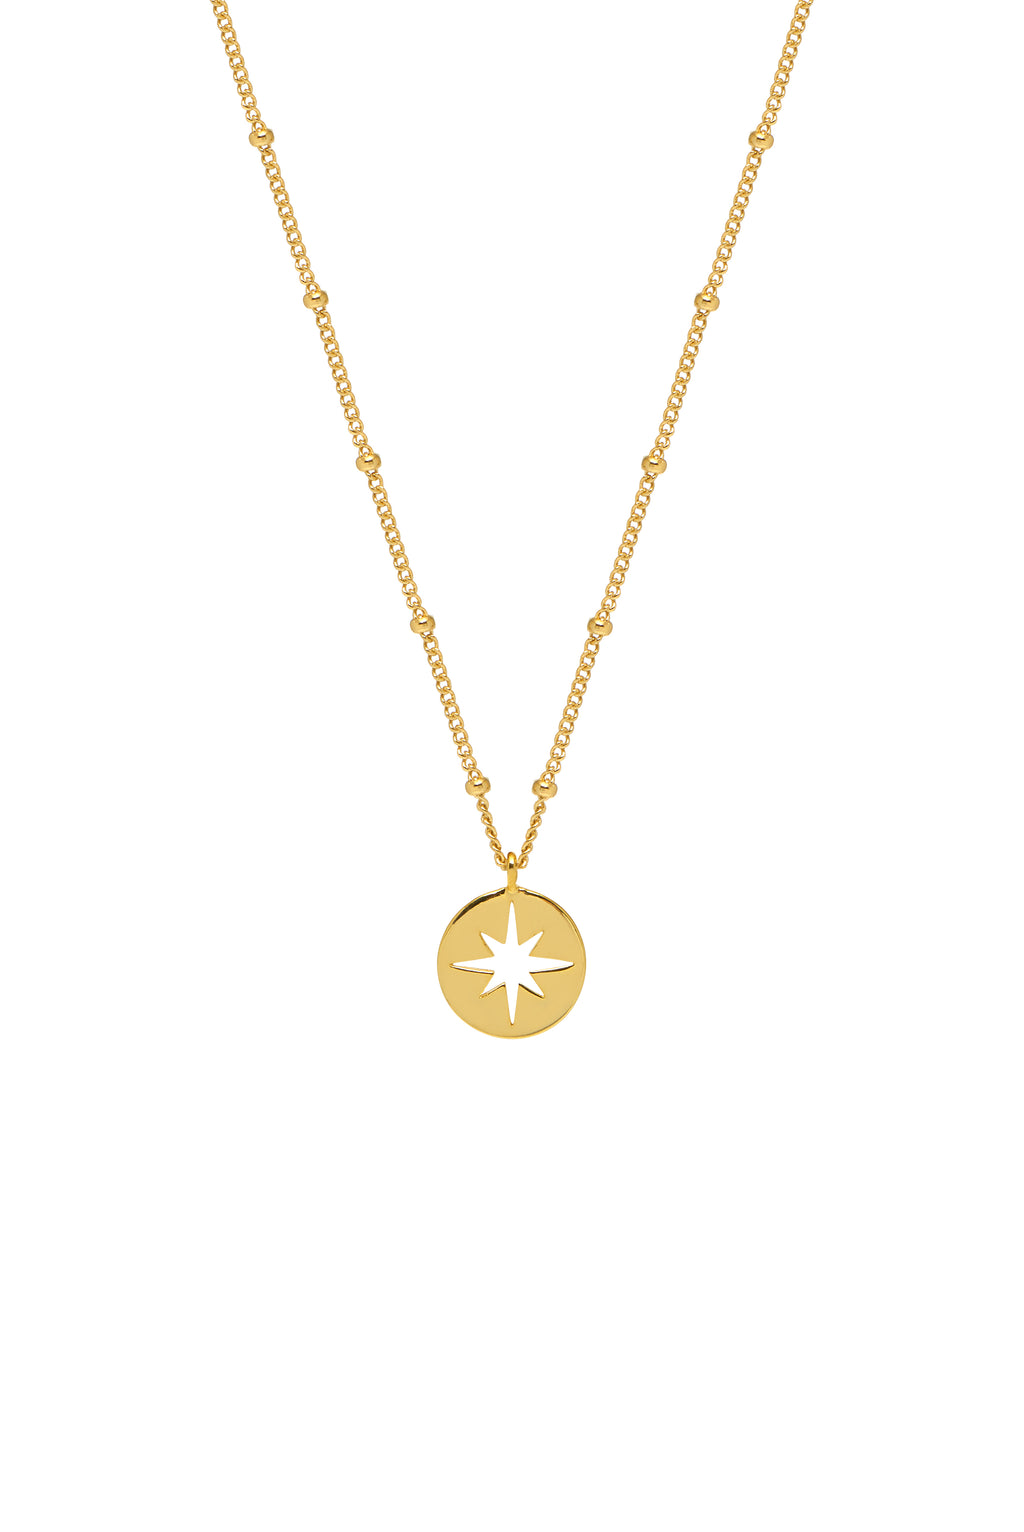 ESTELLA BARTLETT CUT OUT STARBURST NECKLACE